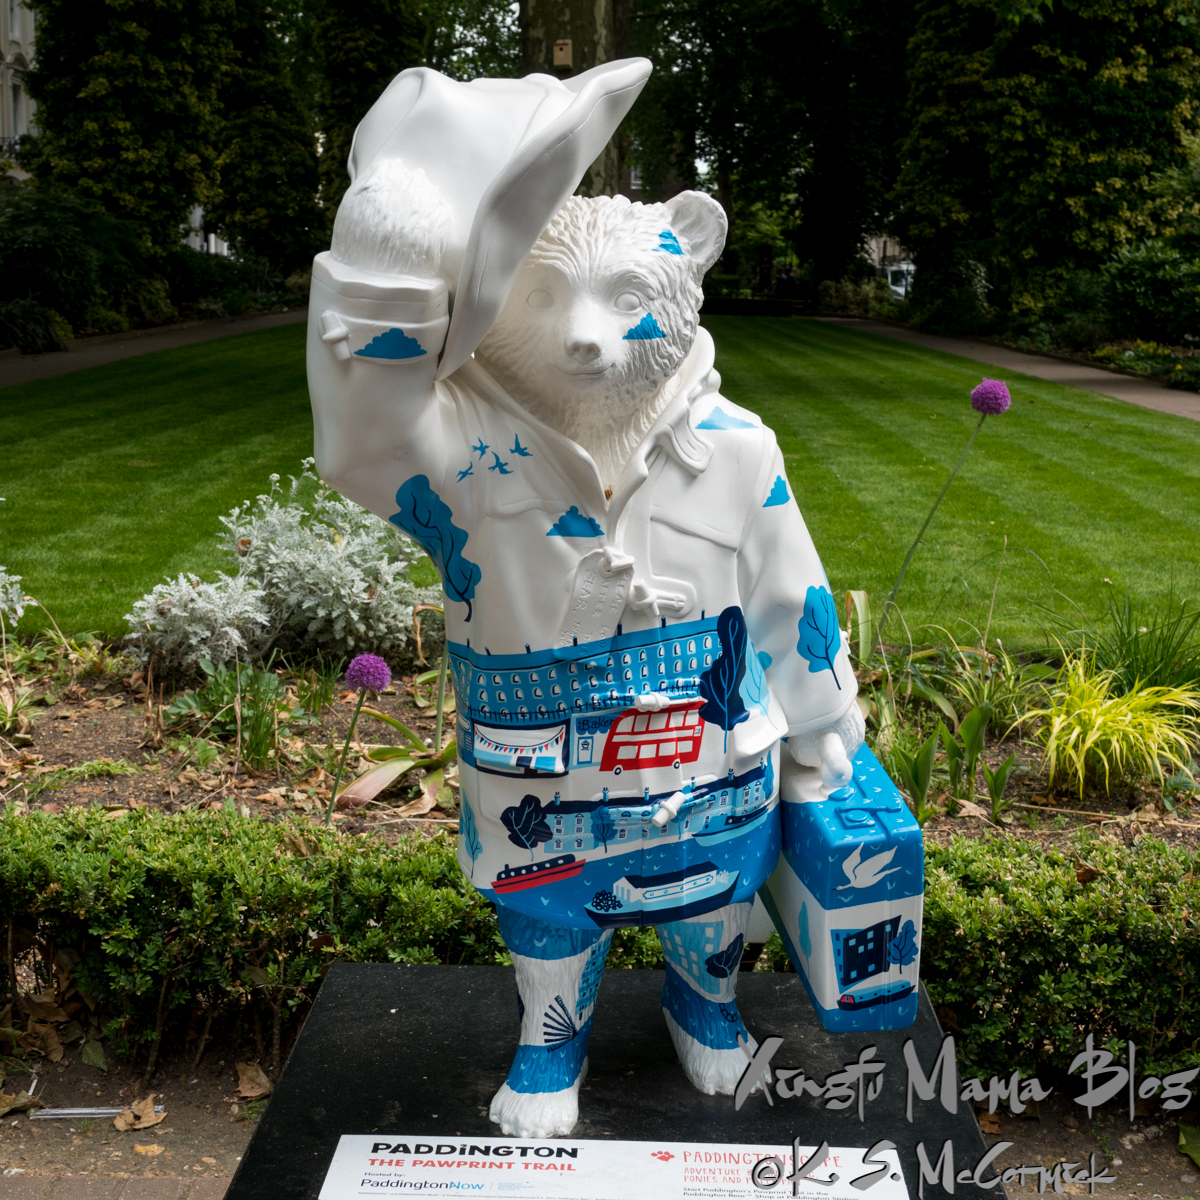 A white Paddinton Bear statue decorated with blue (except for the red double decker bus) London sights.